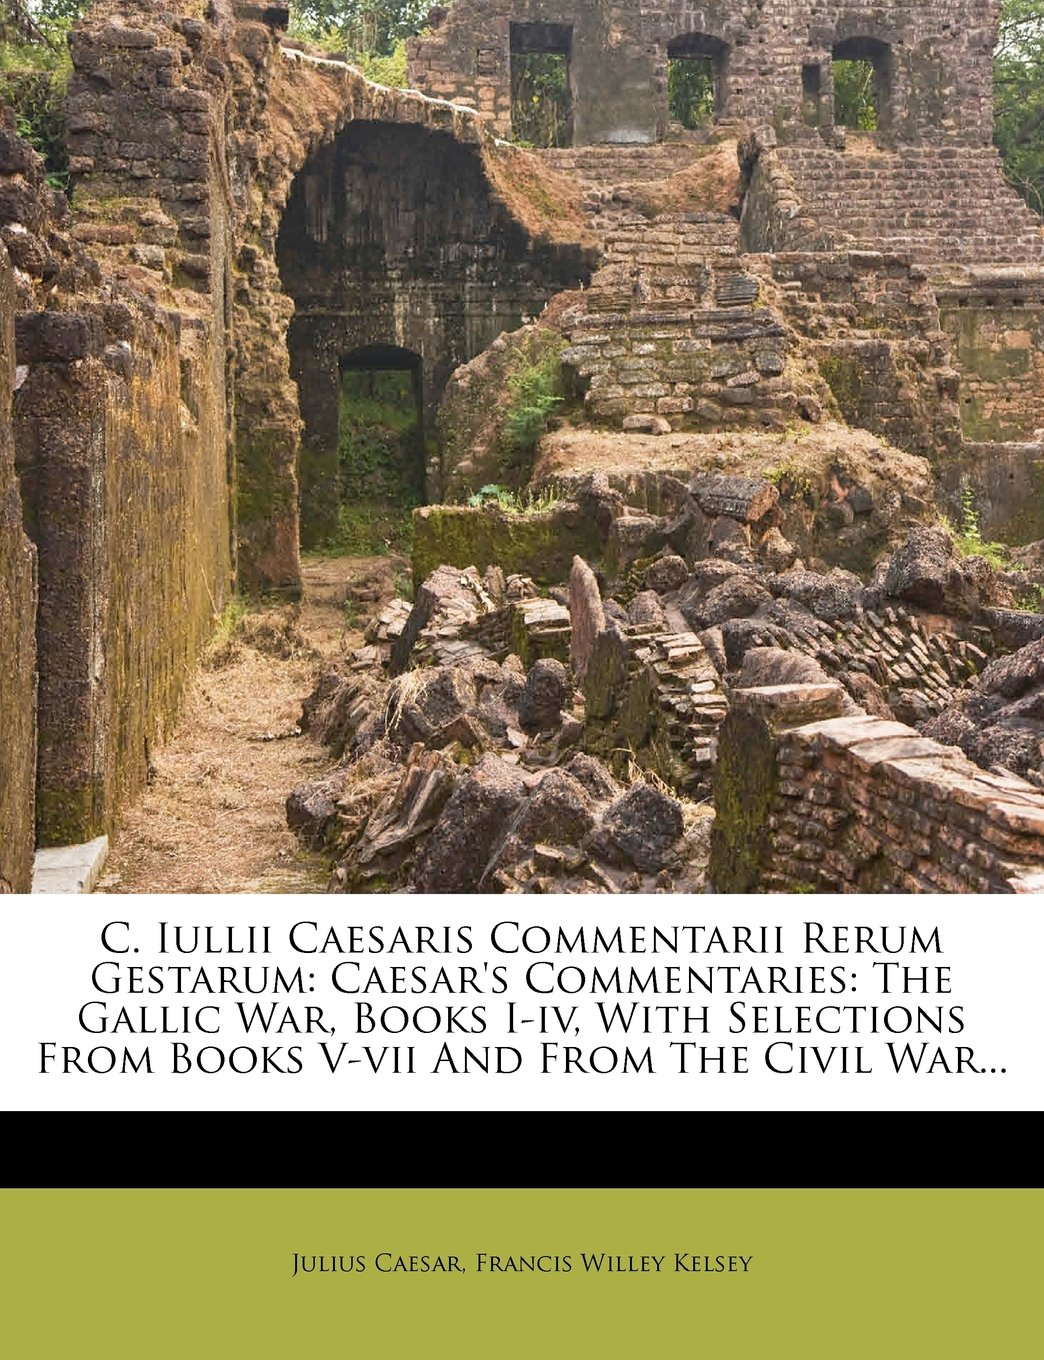 Download C. Iullii Caesaris Commentarii Rerum Gestarum: Caesar's Commentaries: The Gallic War, Books I-iv, With Selections From Books V-vii And From The Civil War... pdf epub